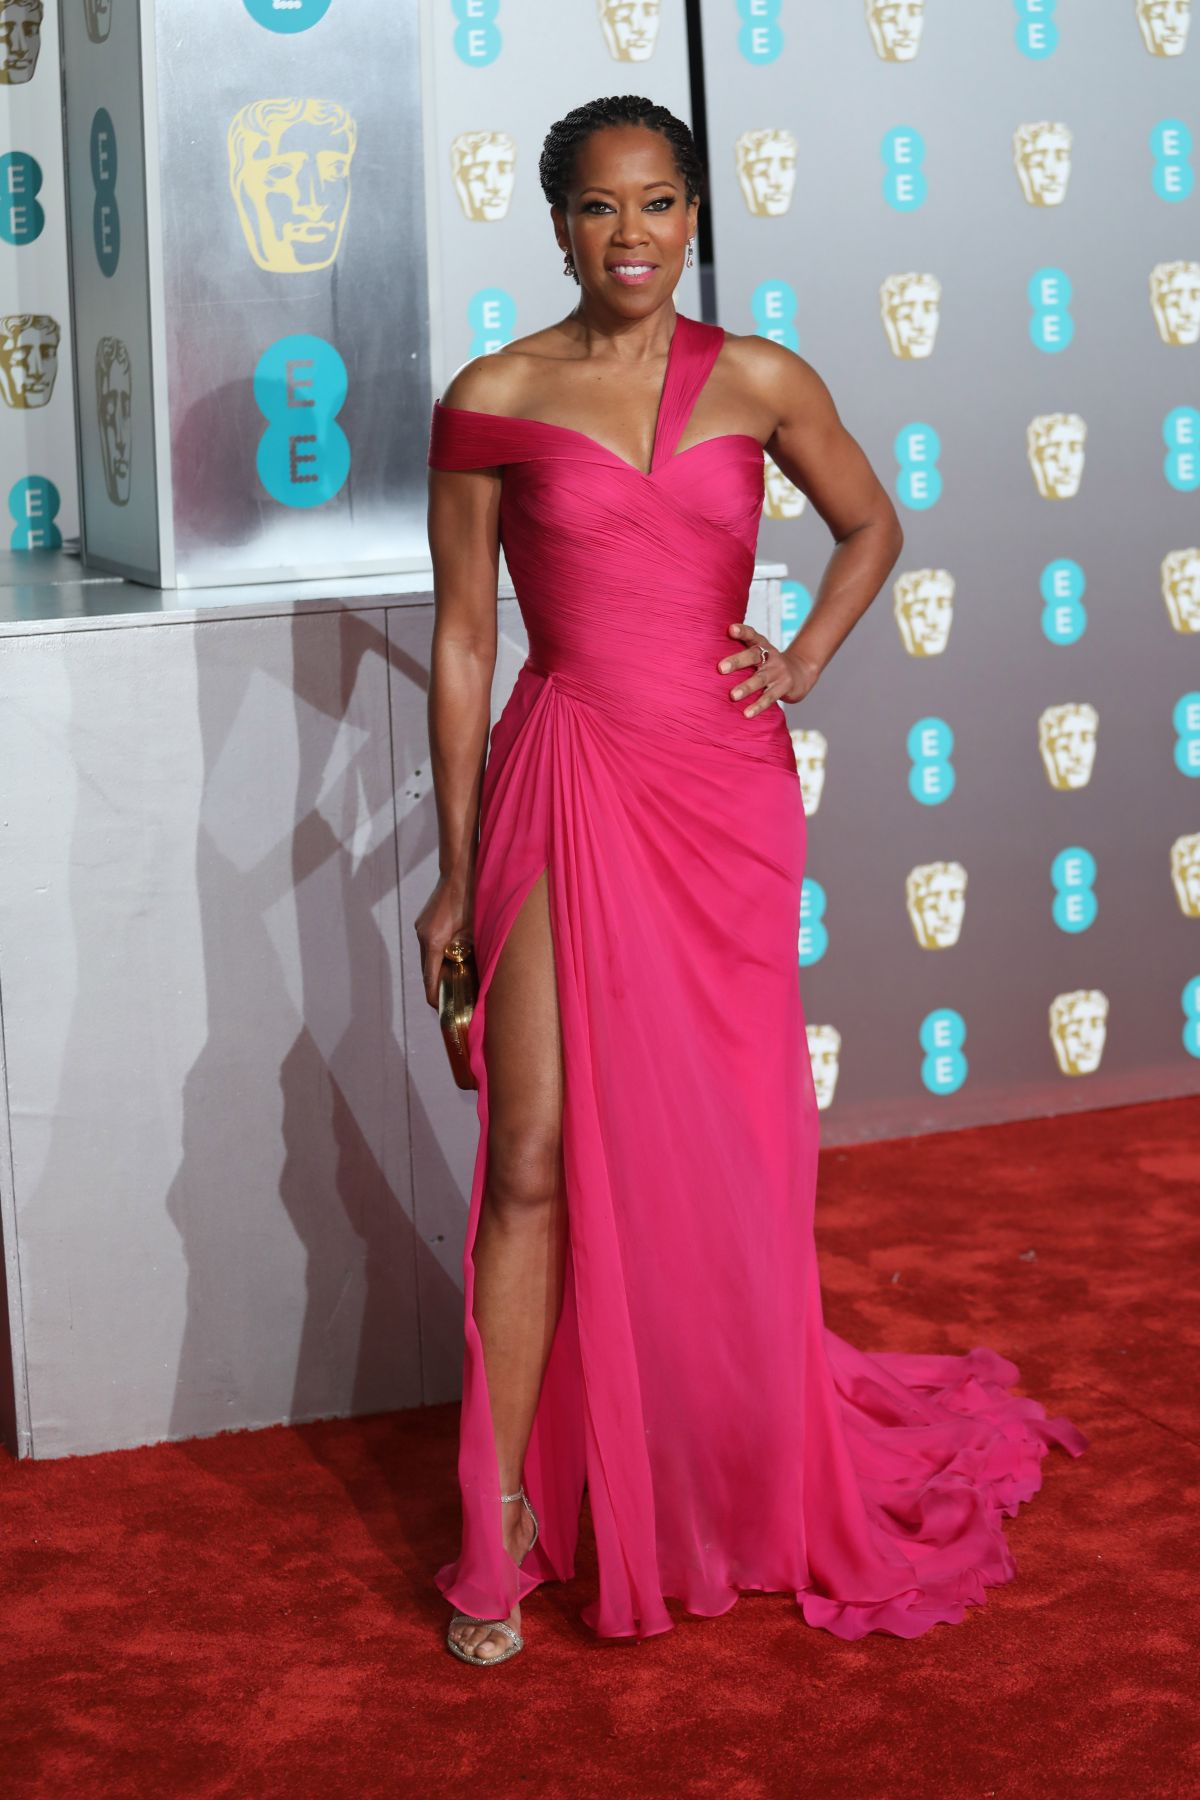 REGINA KING at Bafta Awards 2019 in London 02/10/2019 ...